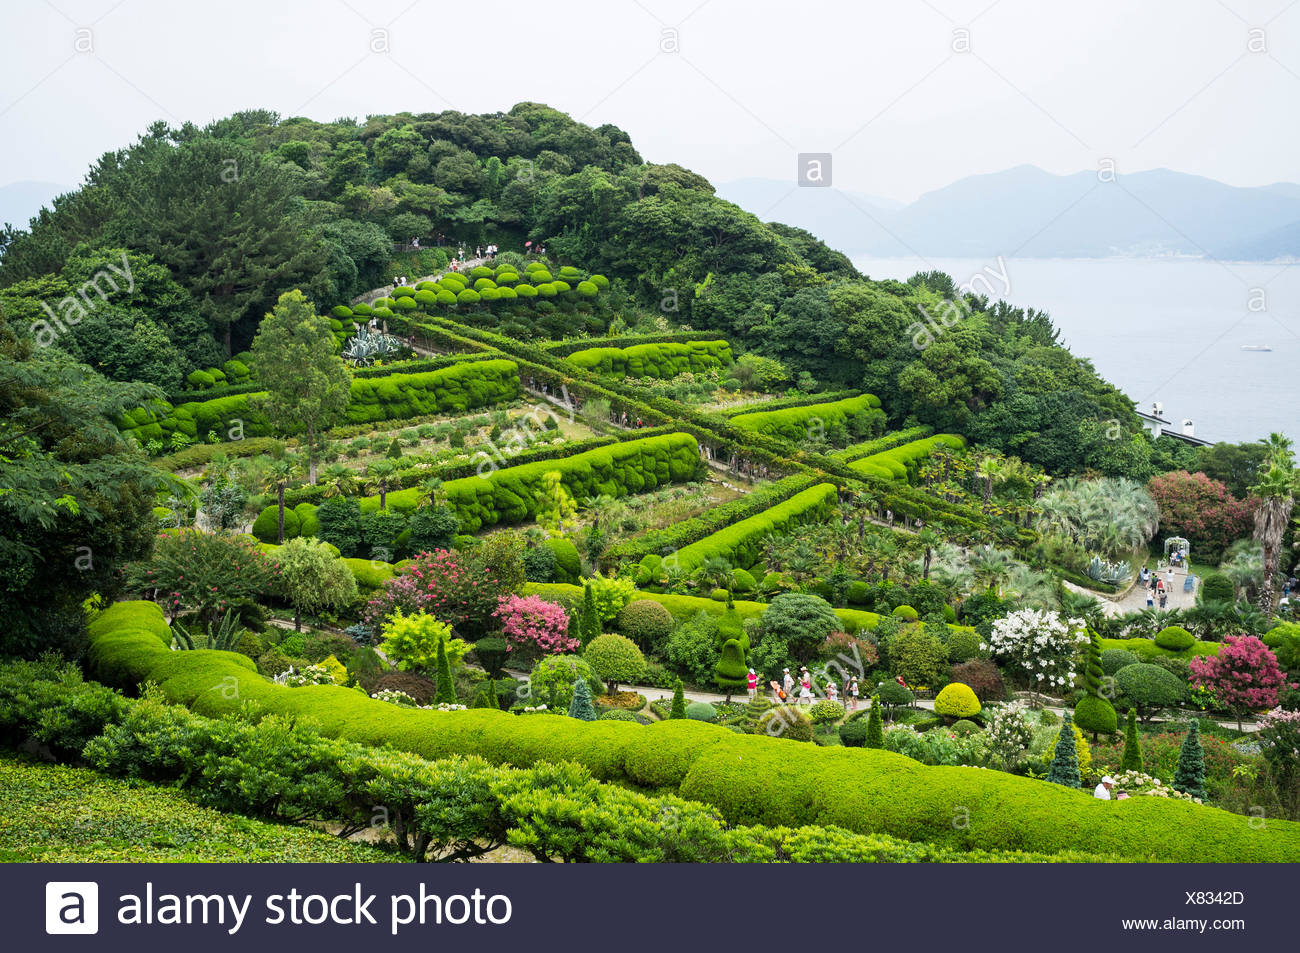 Garden On A Hill, South Korea.